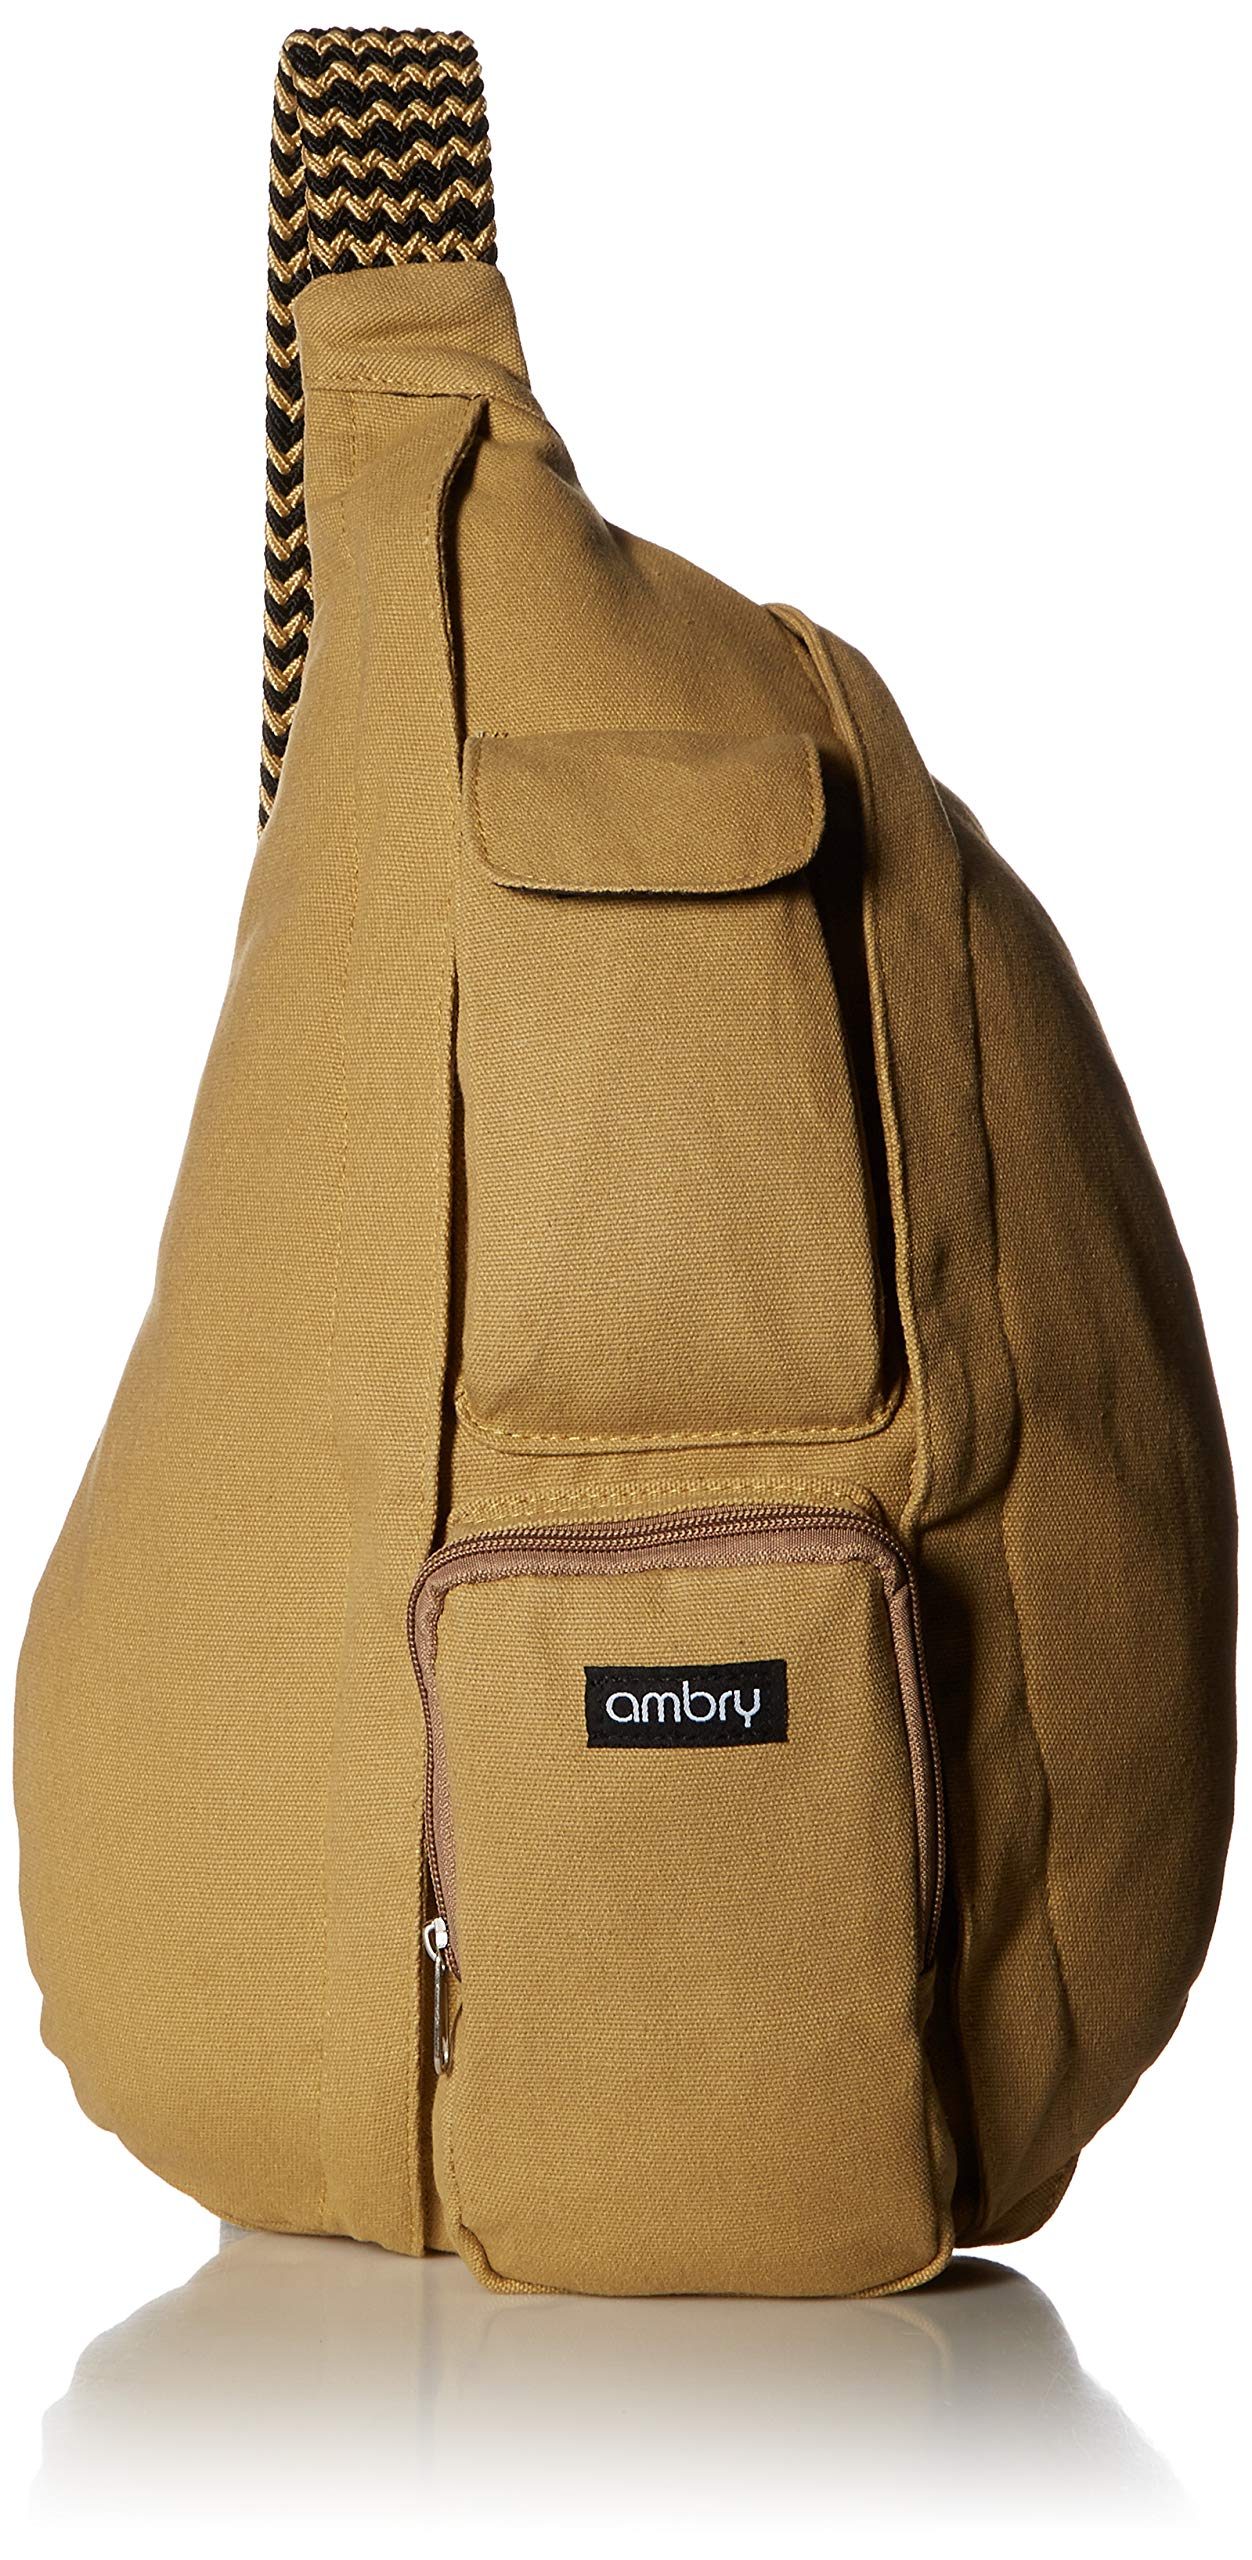 Ambry Rope Sling Bag, Backpack for Women – Canvas Crossbody Shoulder Sling for Travel, Commuting and Hiking (Riley)